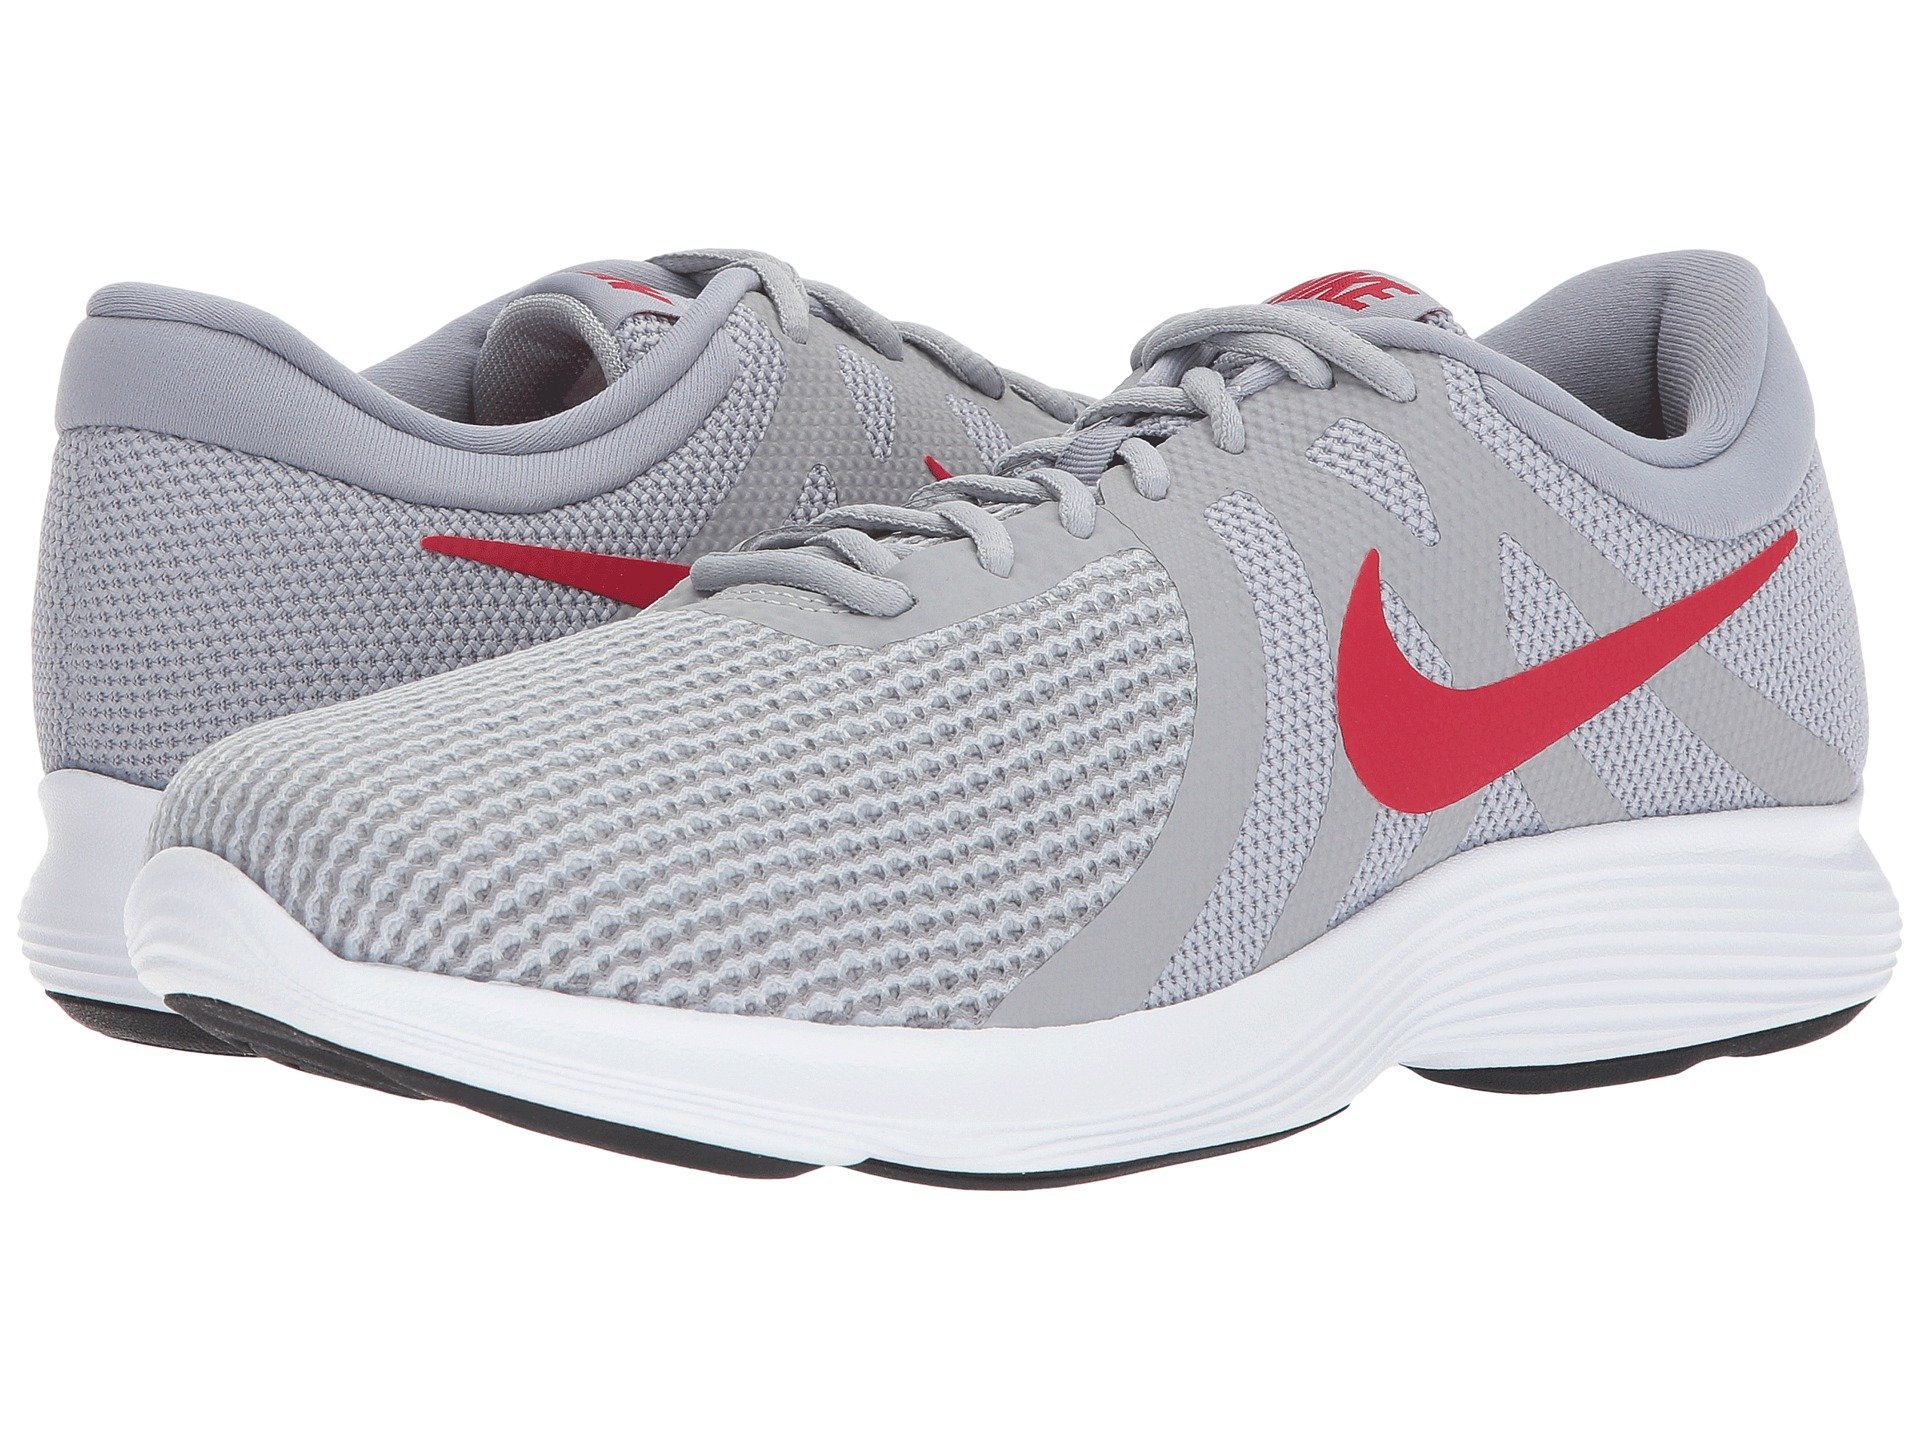 NIKE Men's Revolution 4 Running Shoe Wolf Grey/Gym Red/Stealth/White Size 8.5 M US